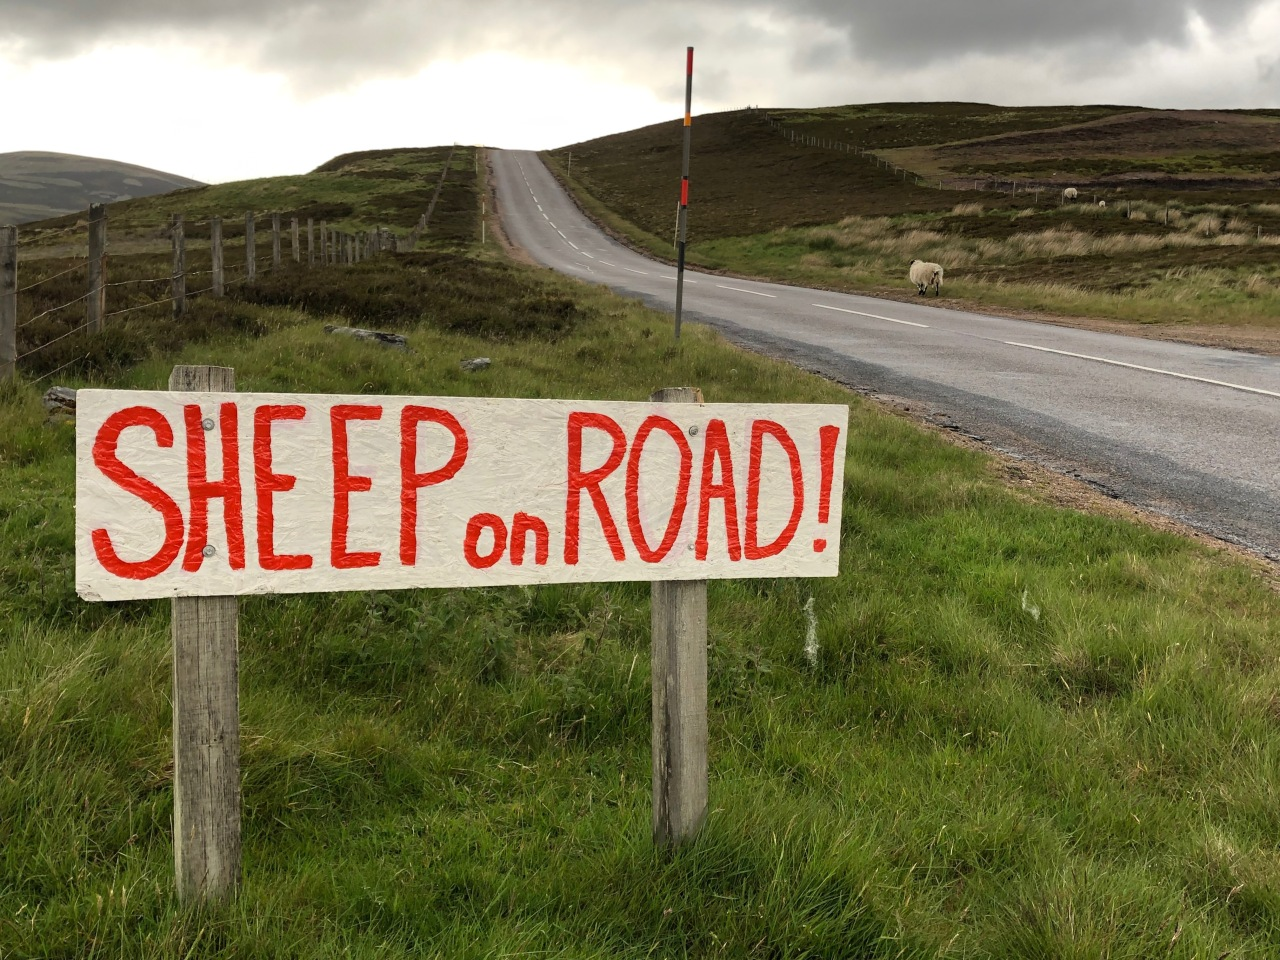 Sheep on Road!